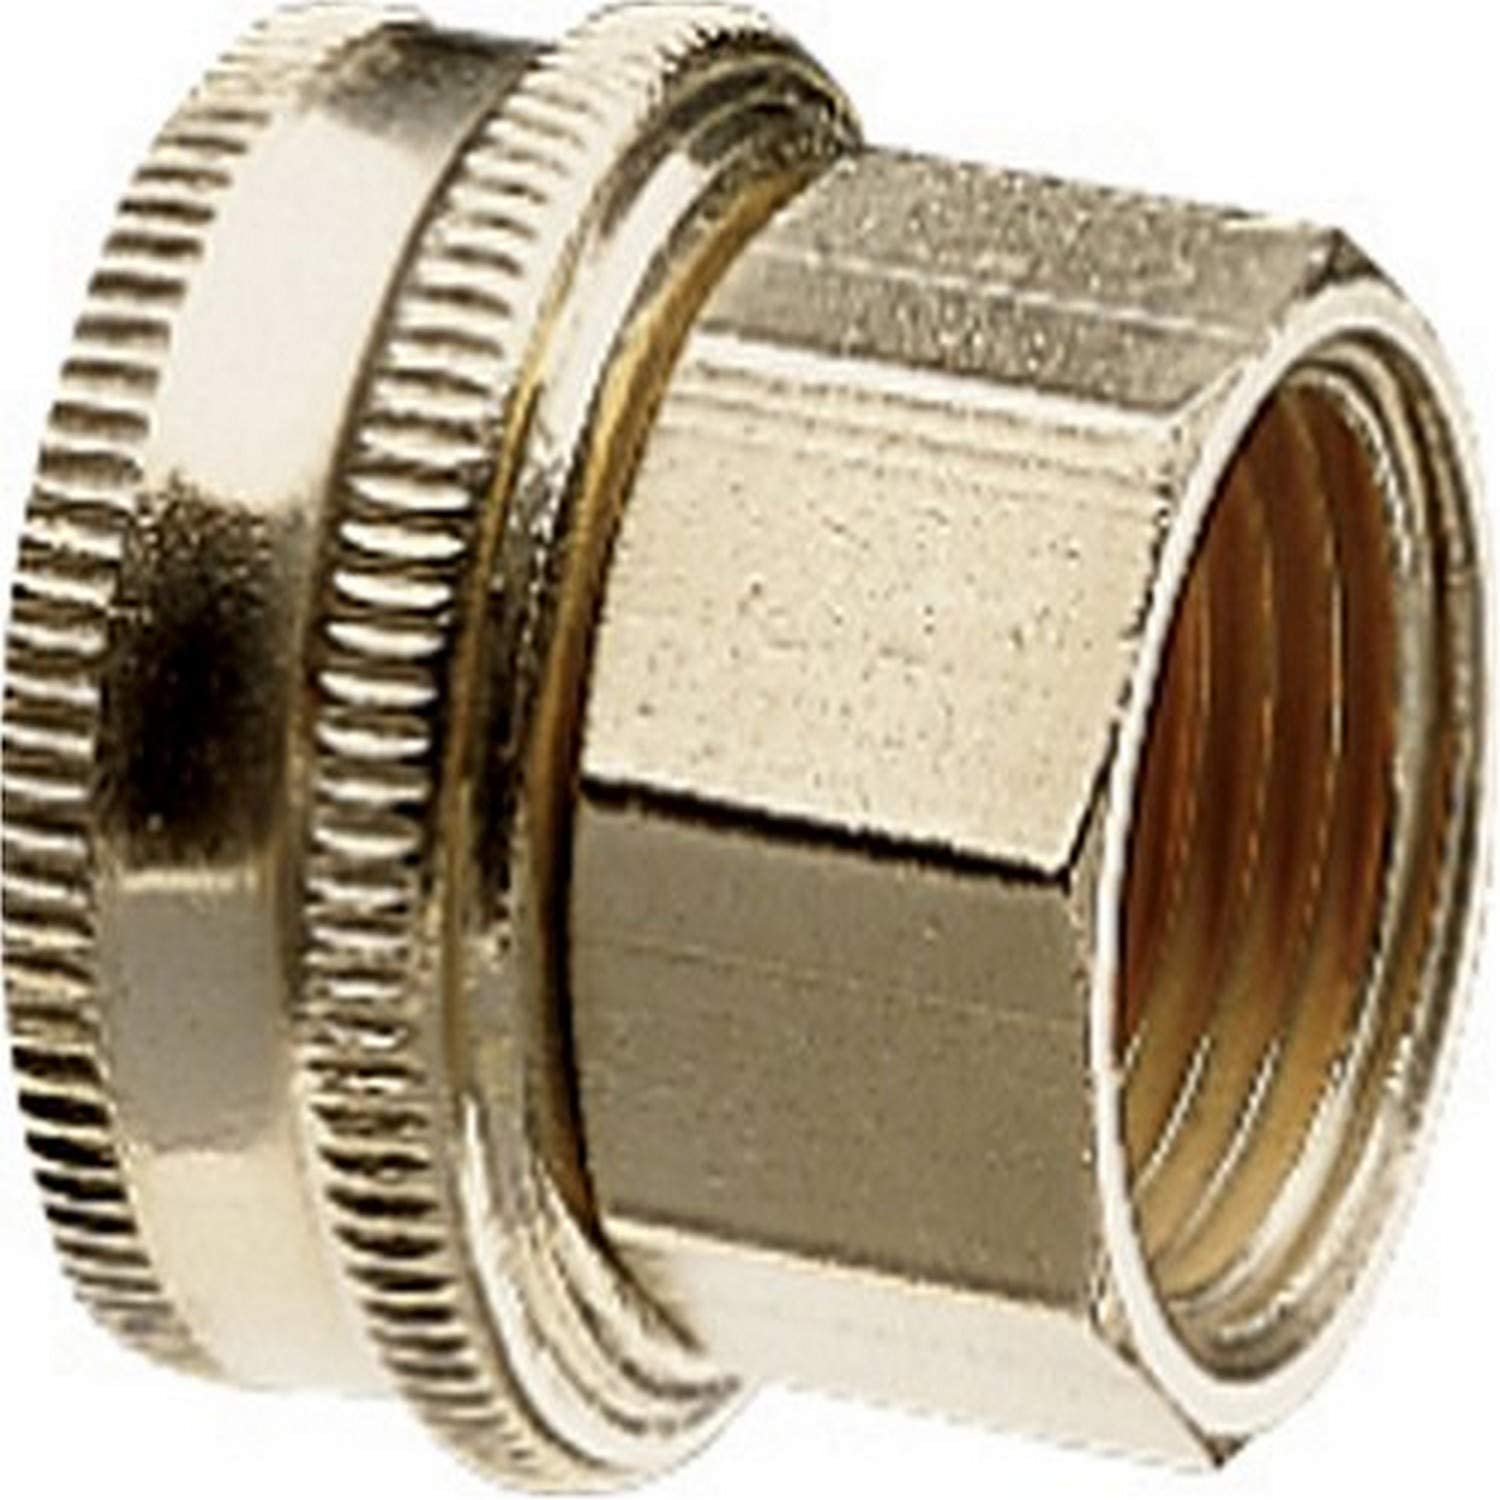 Nelson 855754-1001 Industrial Brass Pipe and Hose Fitting with One Swivel for 1/2-Inch Male NPS to Male Hose, Female